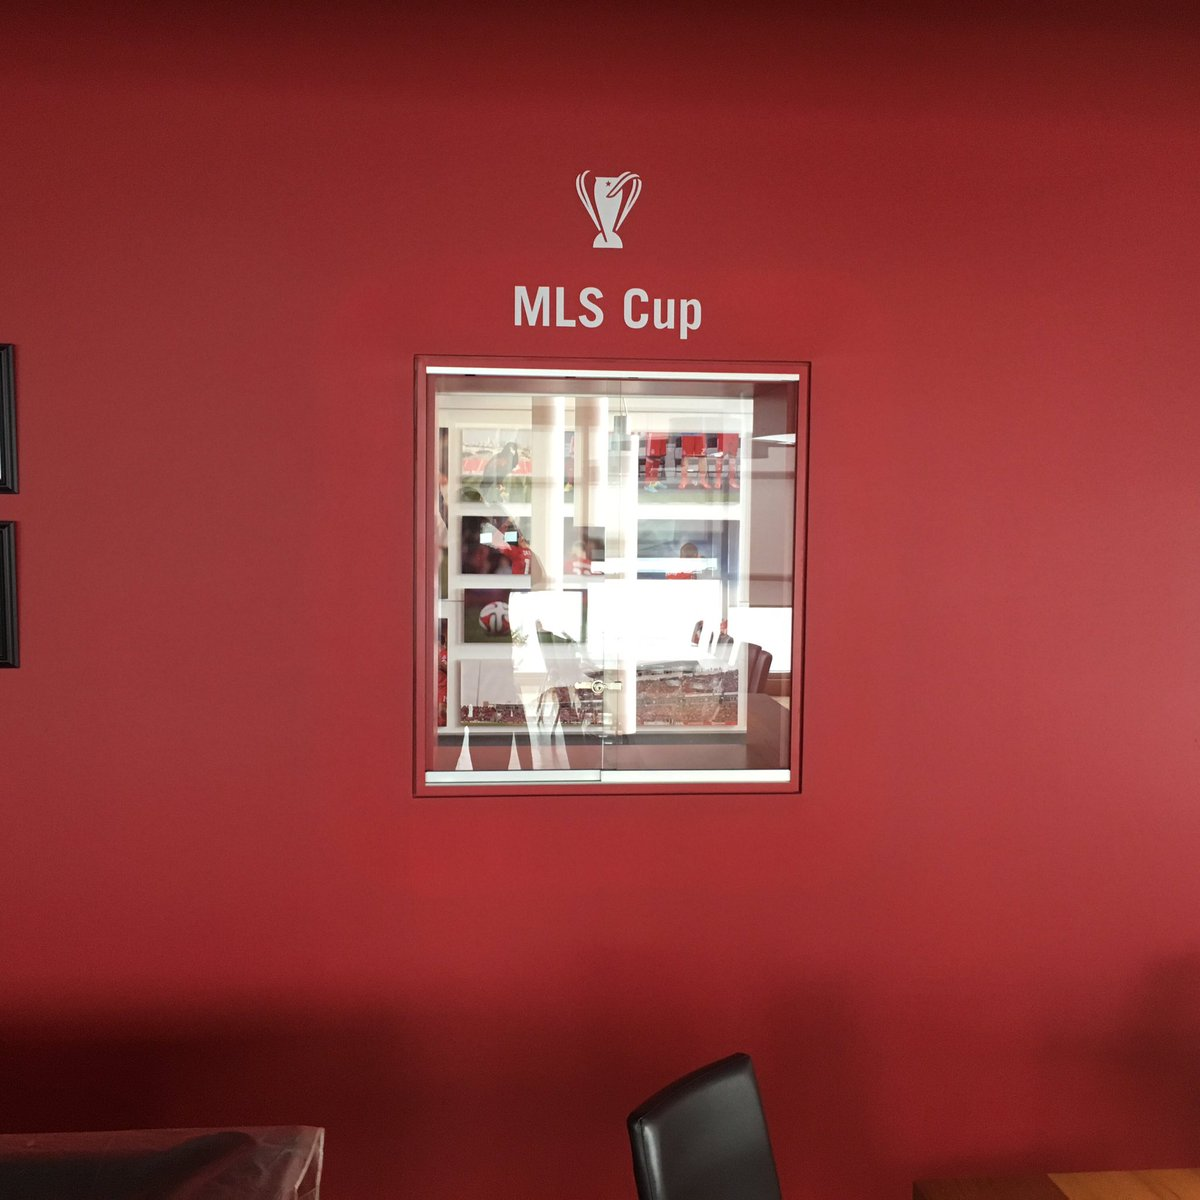 John Molinaro On Twitter Tfc Built These Trophy Cases At